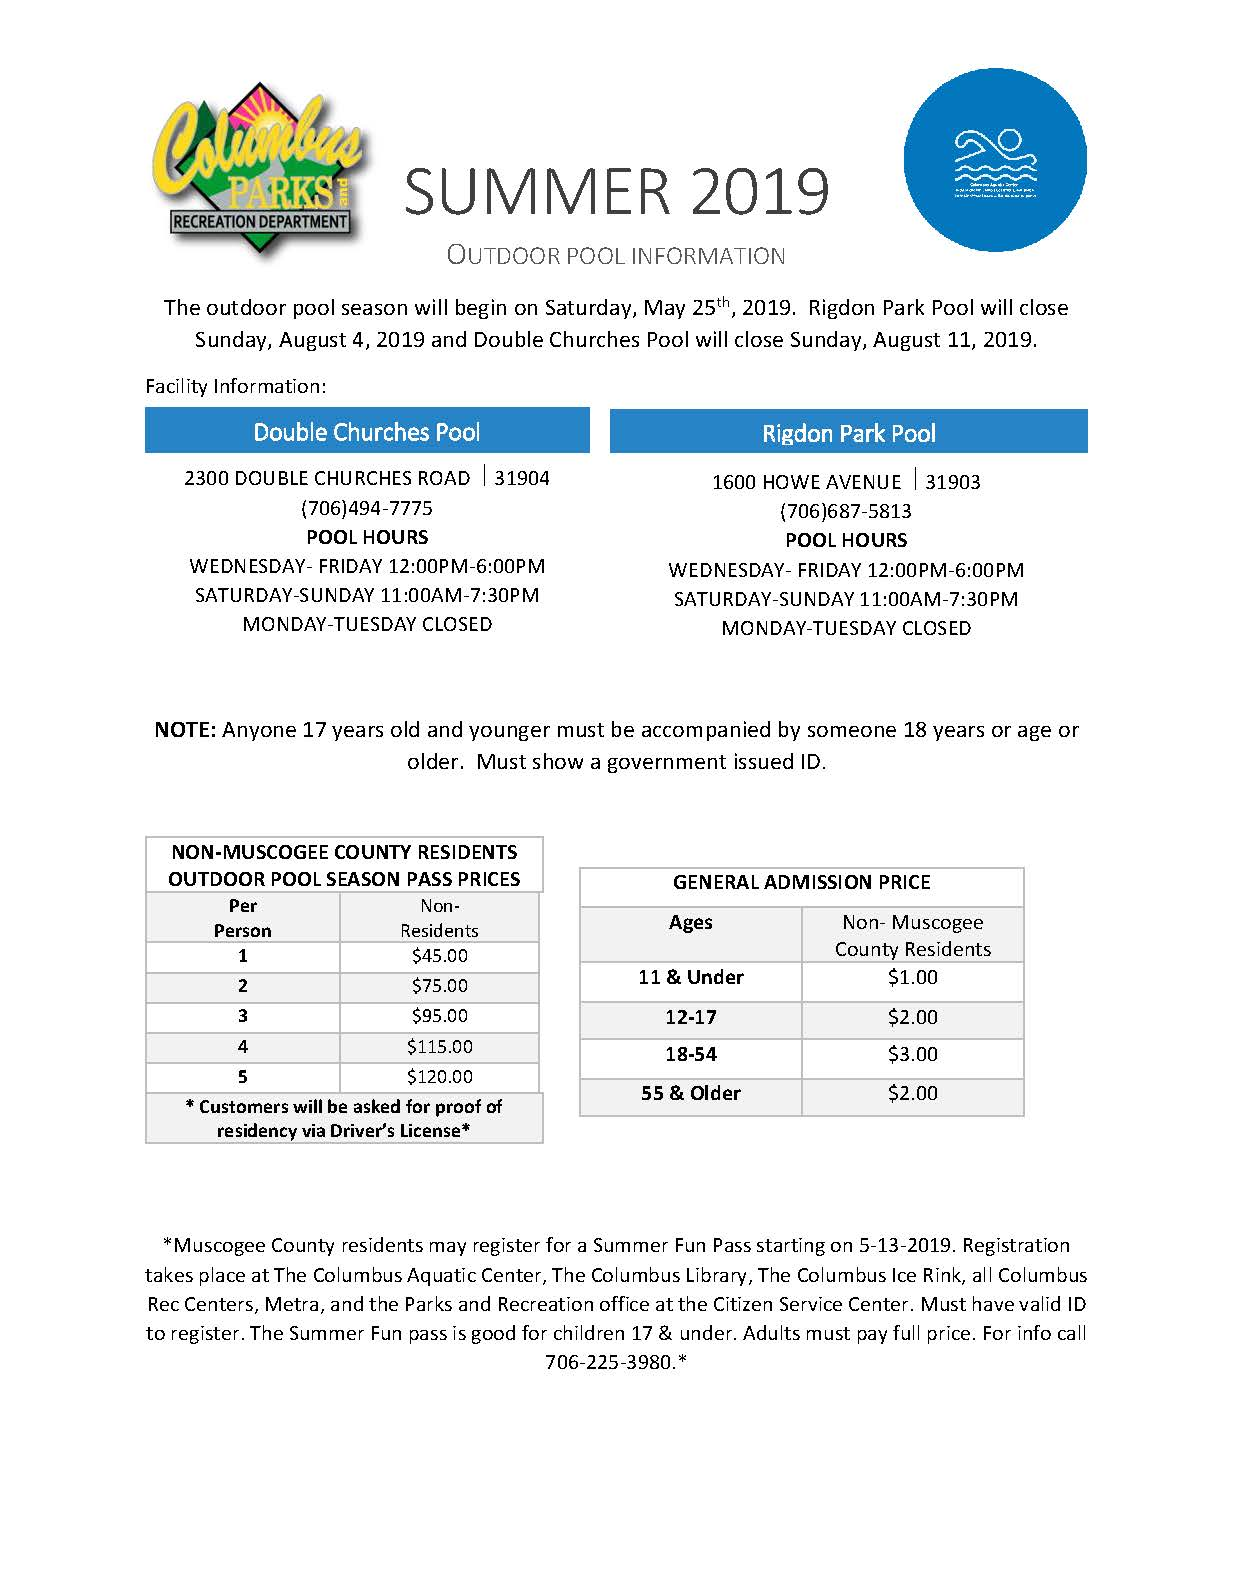 Summer 2019 Outdoor Pool Info636922337520458835